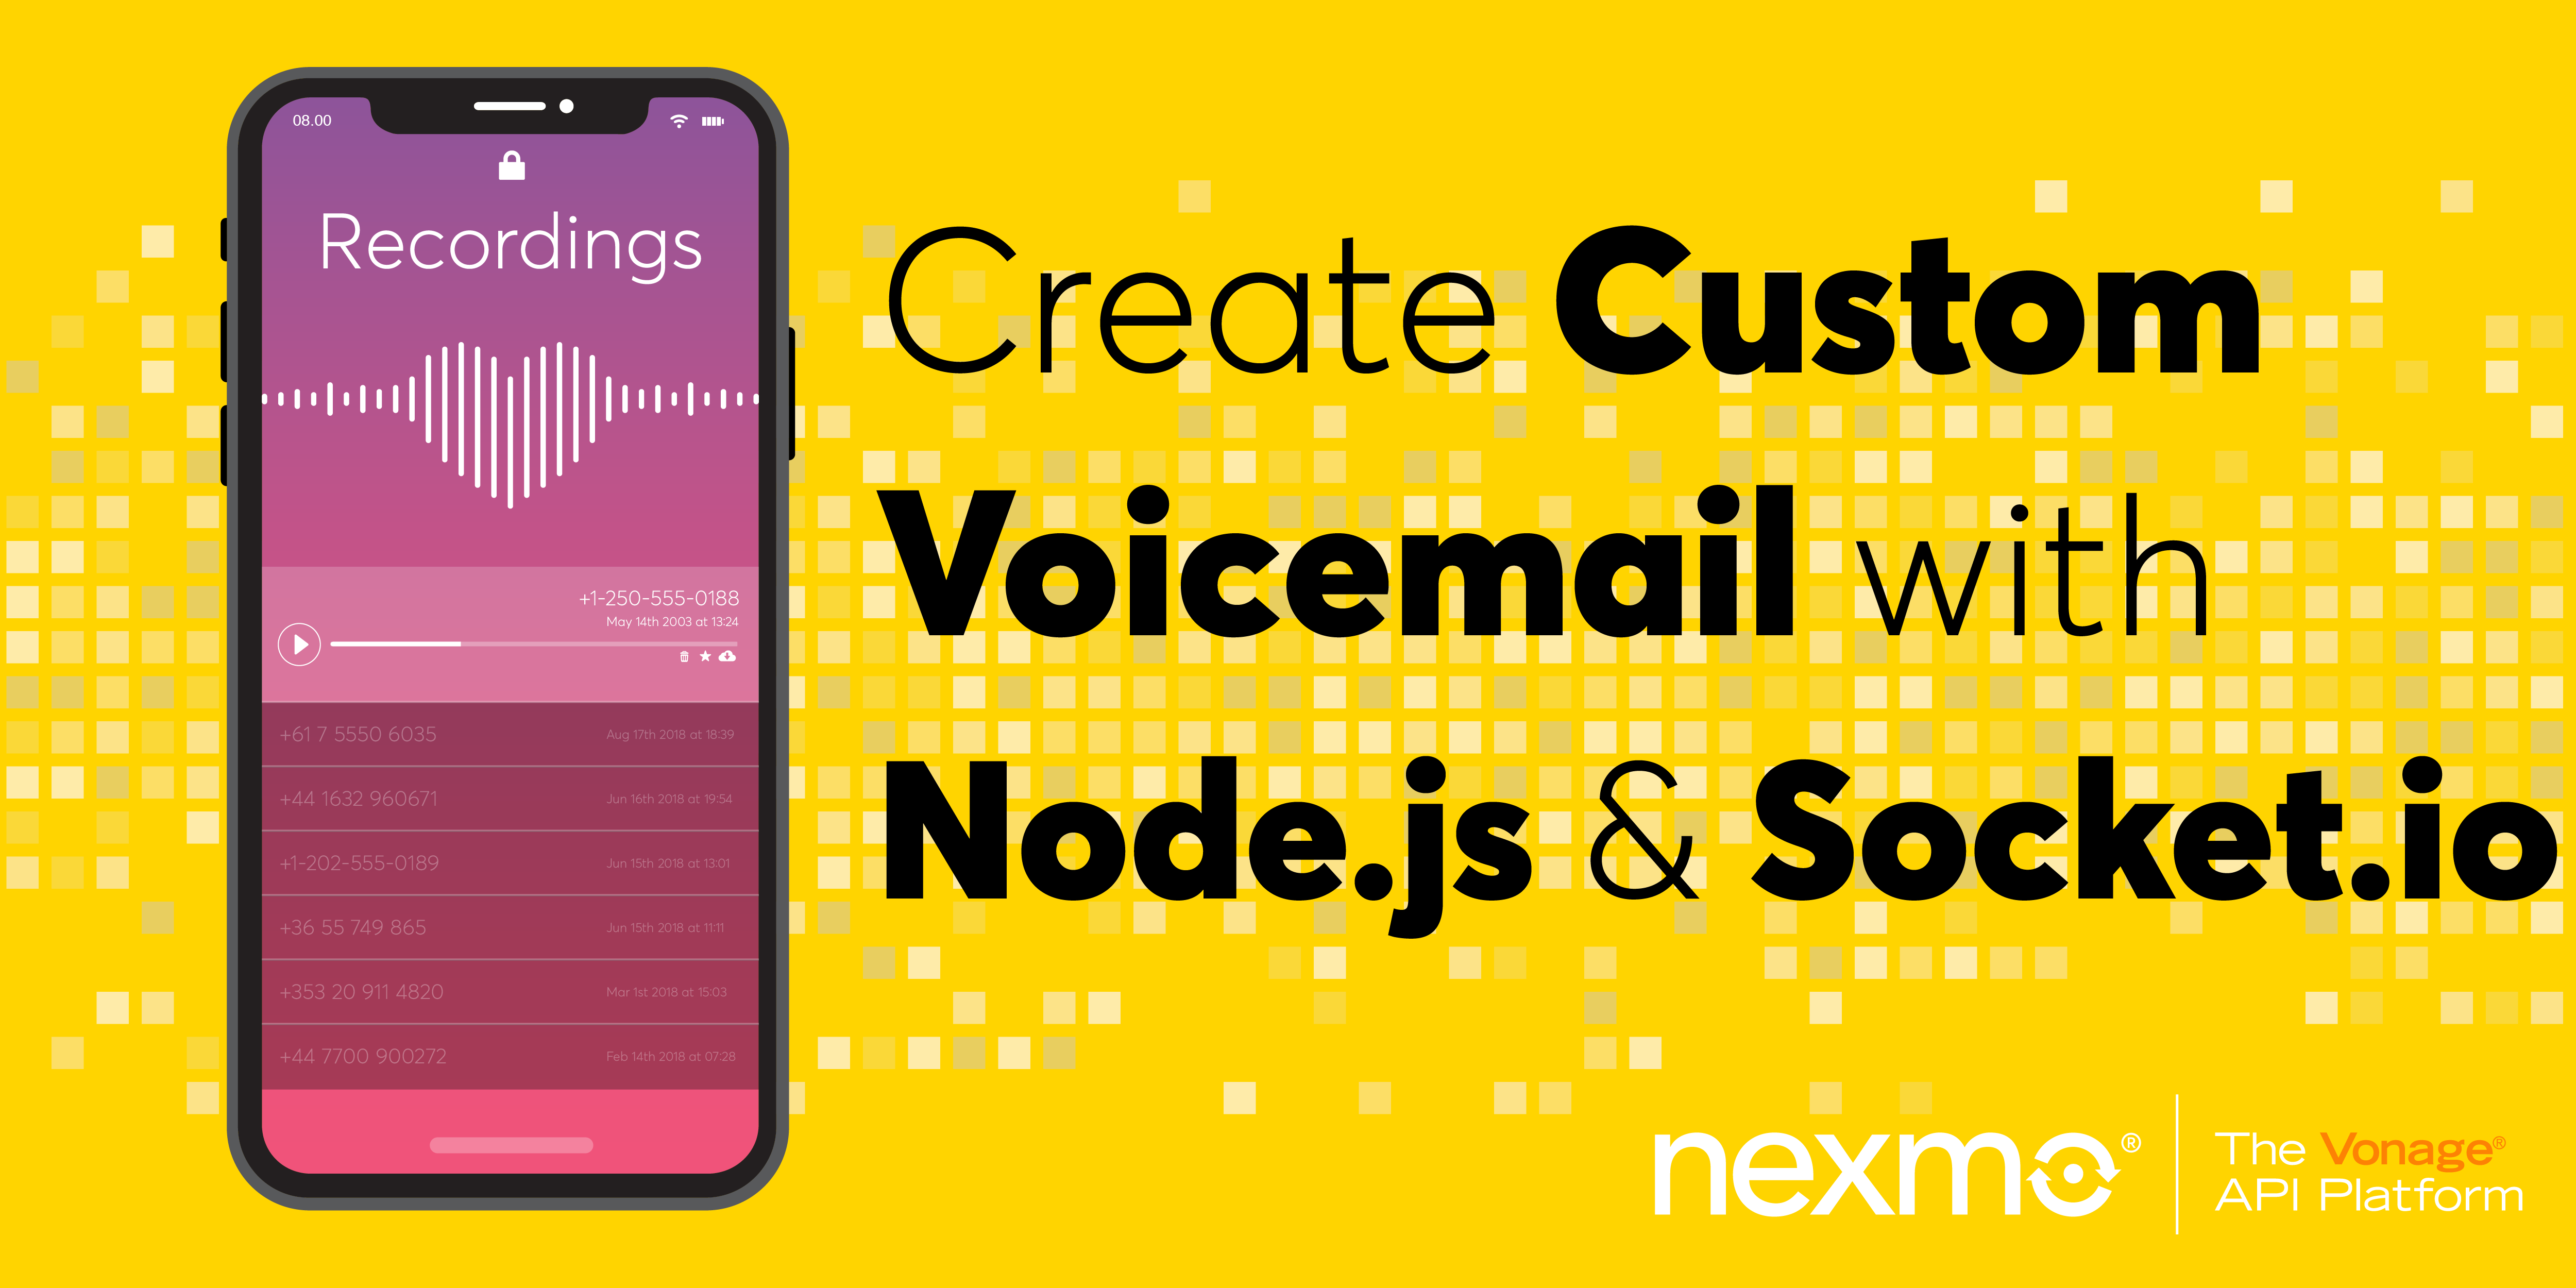 Create Custom Voicemail with Node.js, Express and Socket.io